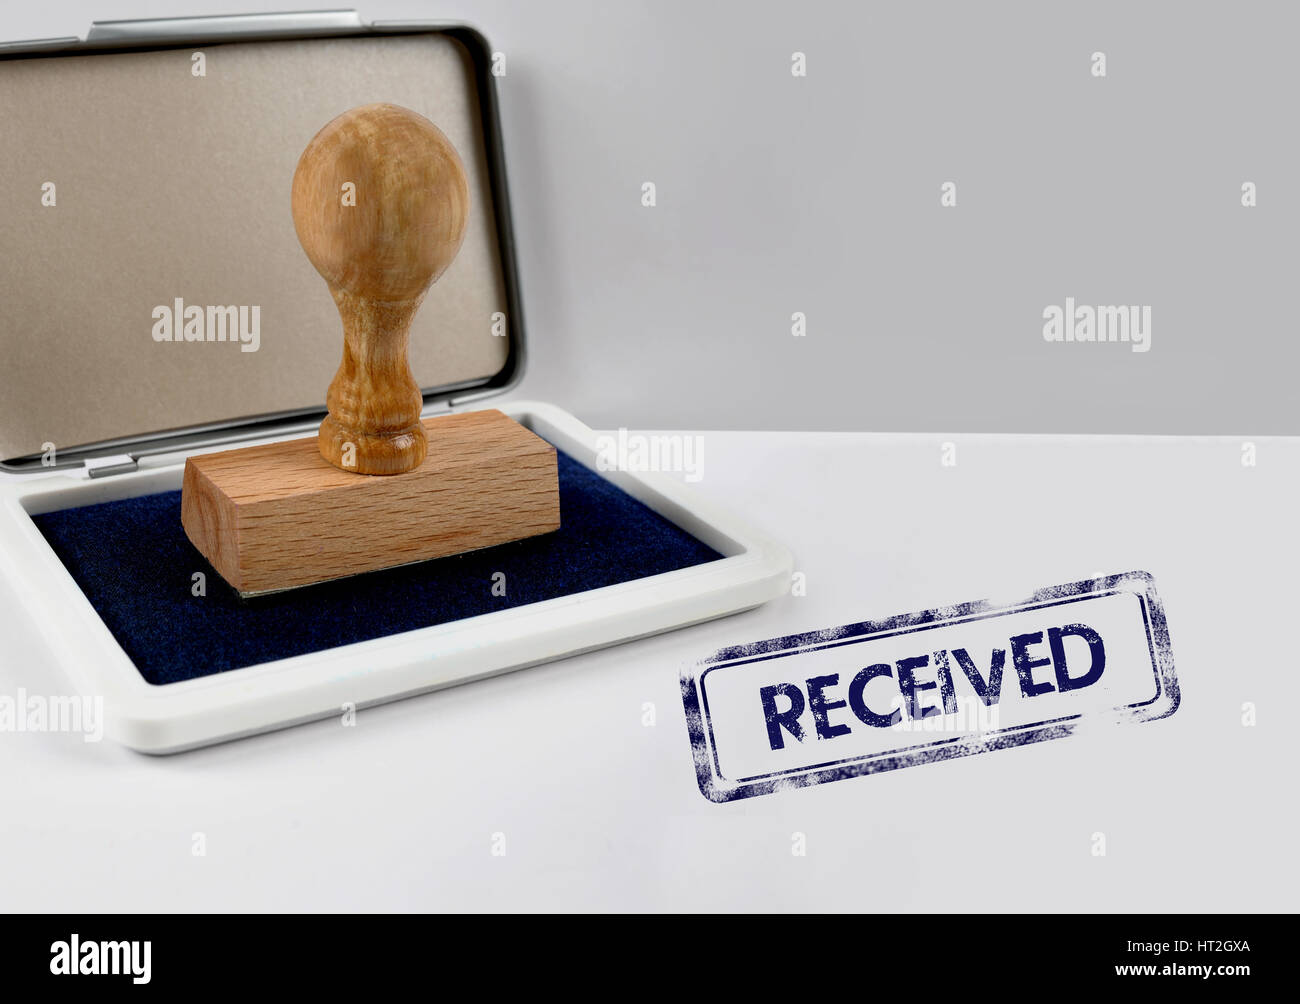 Wooden stamp on a desk RECEIVED - Stock Image